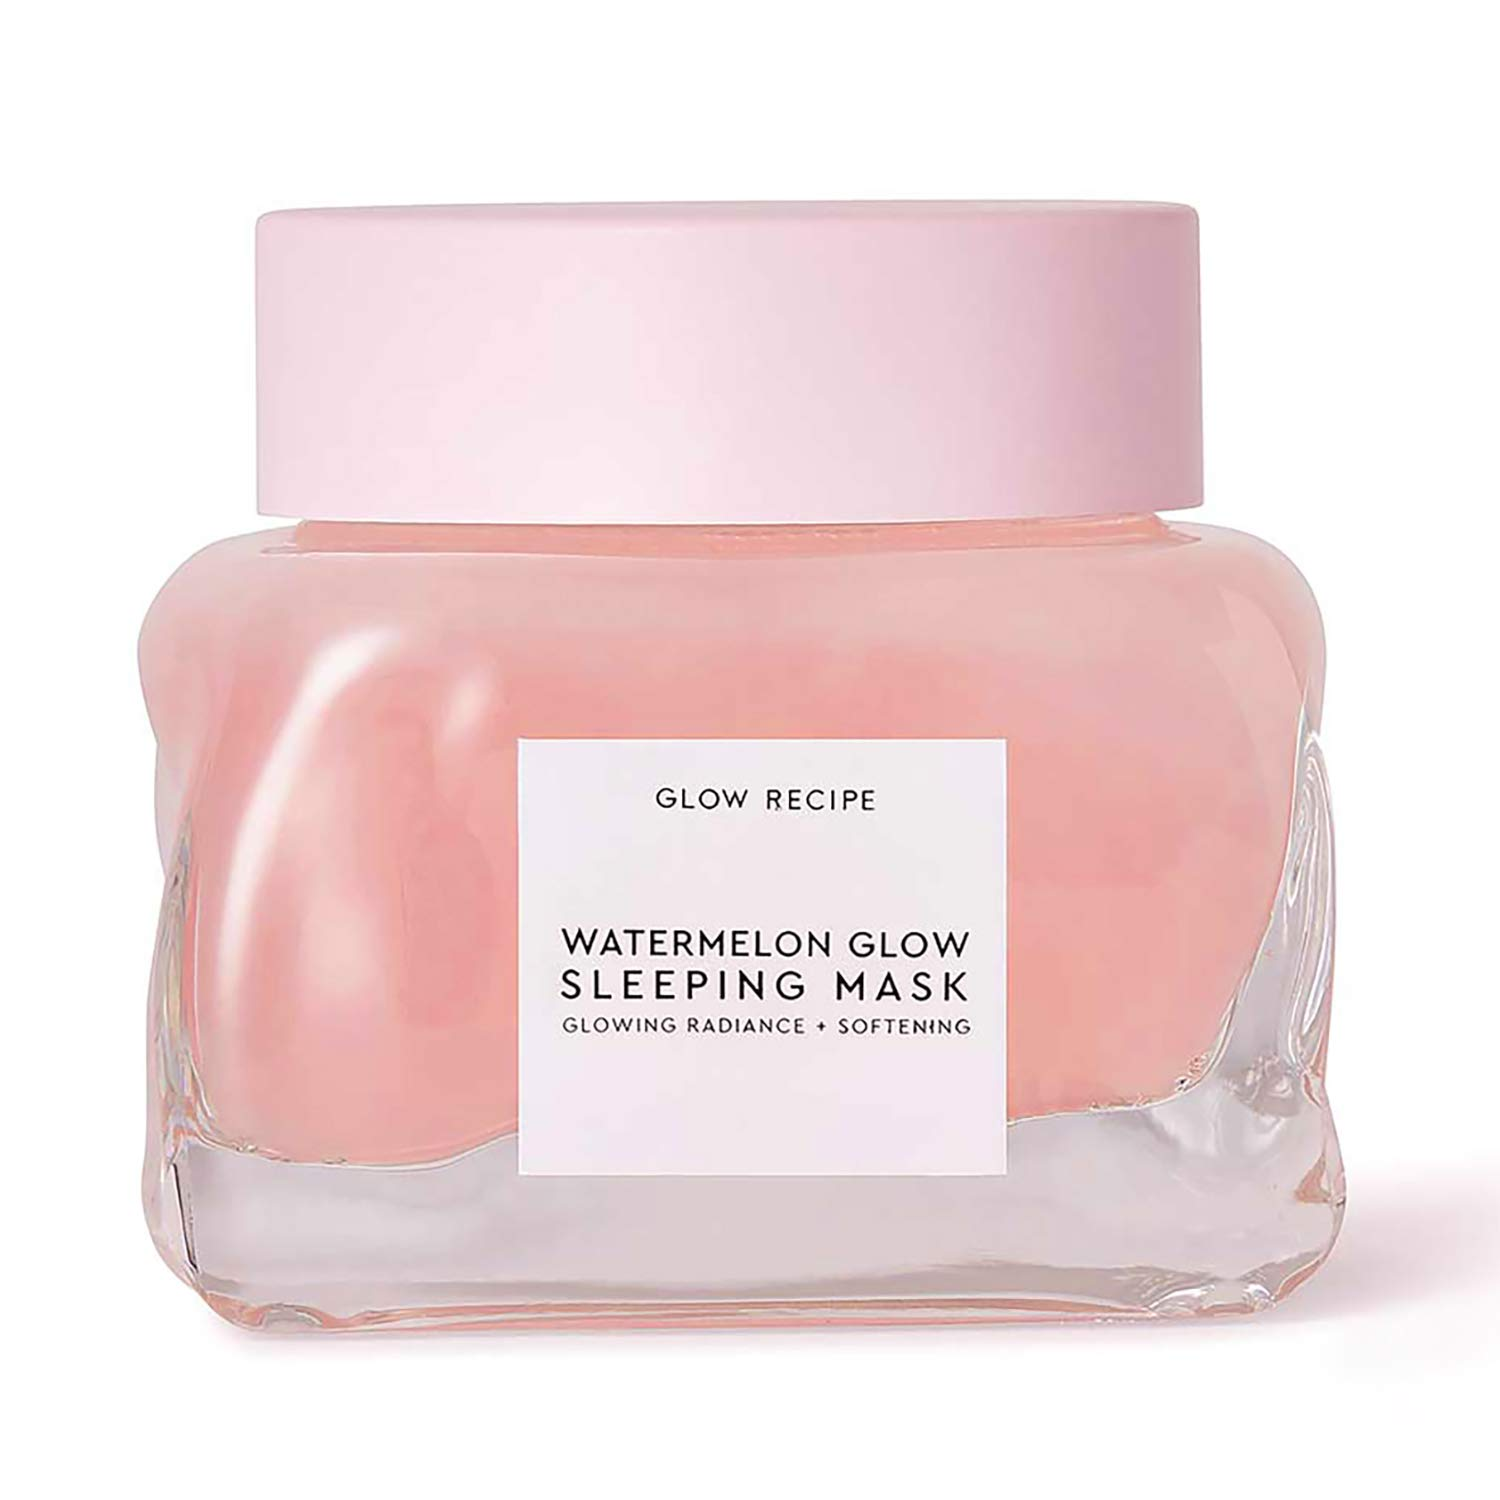 Amazon.com : Glow Recipe Watermelon Glow Sleeping Mask - Anti-Aging +  Brightening Overnight Face Mask w/AHA + Hyaluronic Acid + Pumpkin Seed  Extract - Vegan Hydrating Face Mask for Sensitive Skin (80ml / 2.7oz) :  Beauty